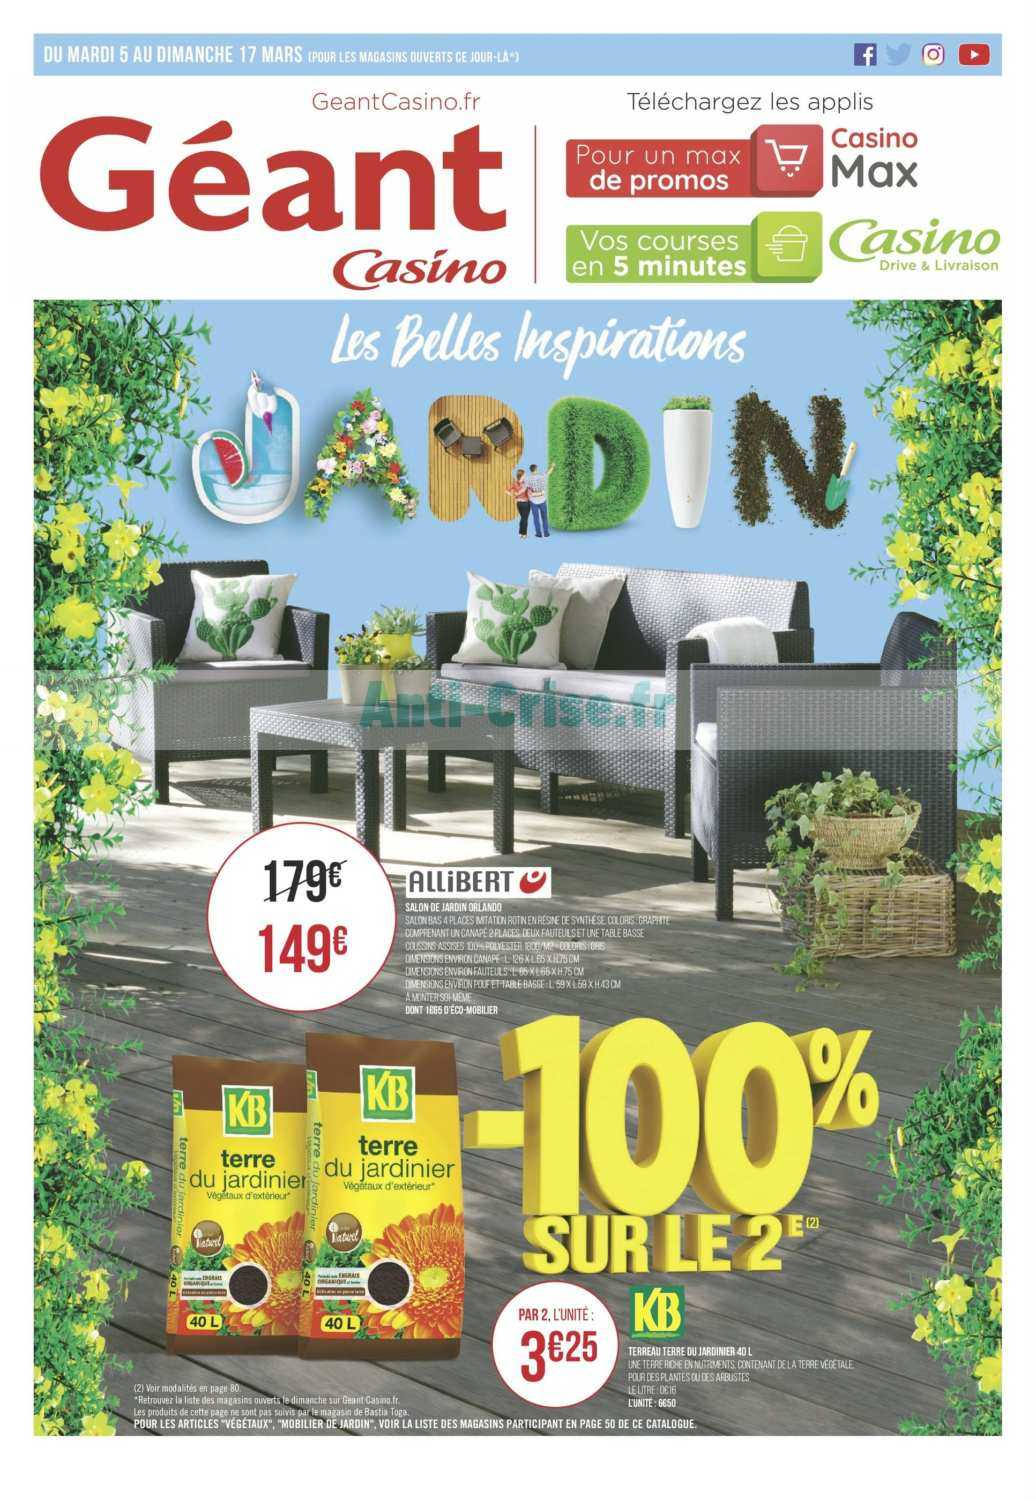 Catalogue Géant Casino du 05 au 17 mars 2019 (Jardin) - Catalogues ...